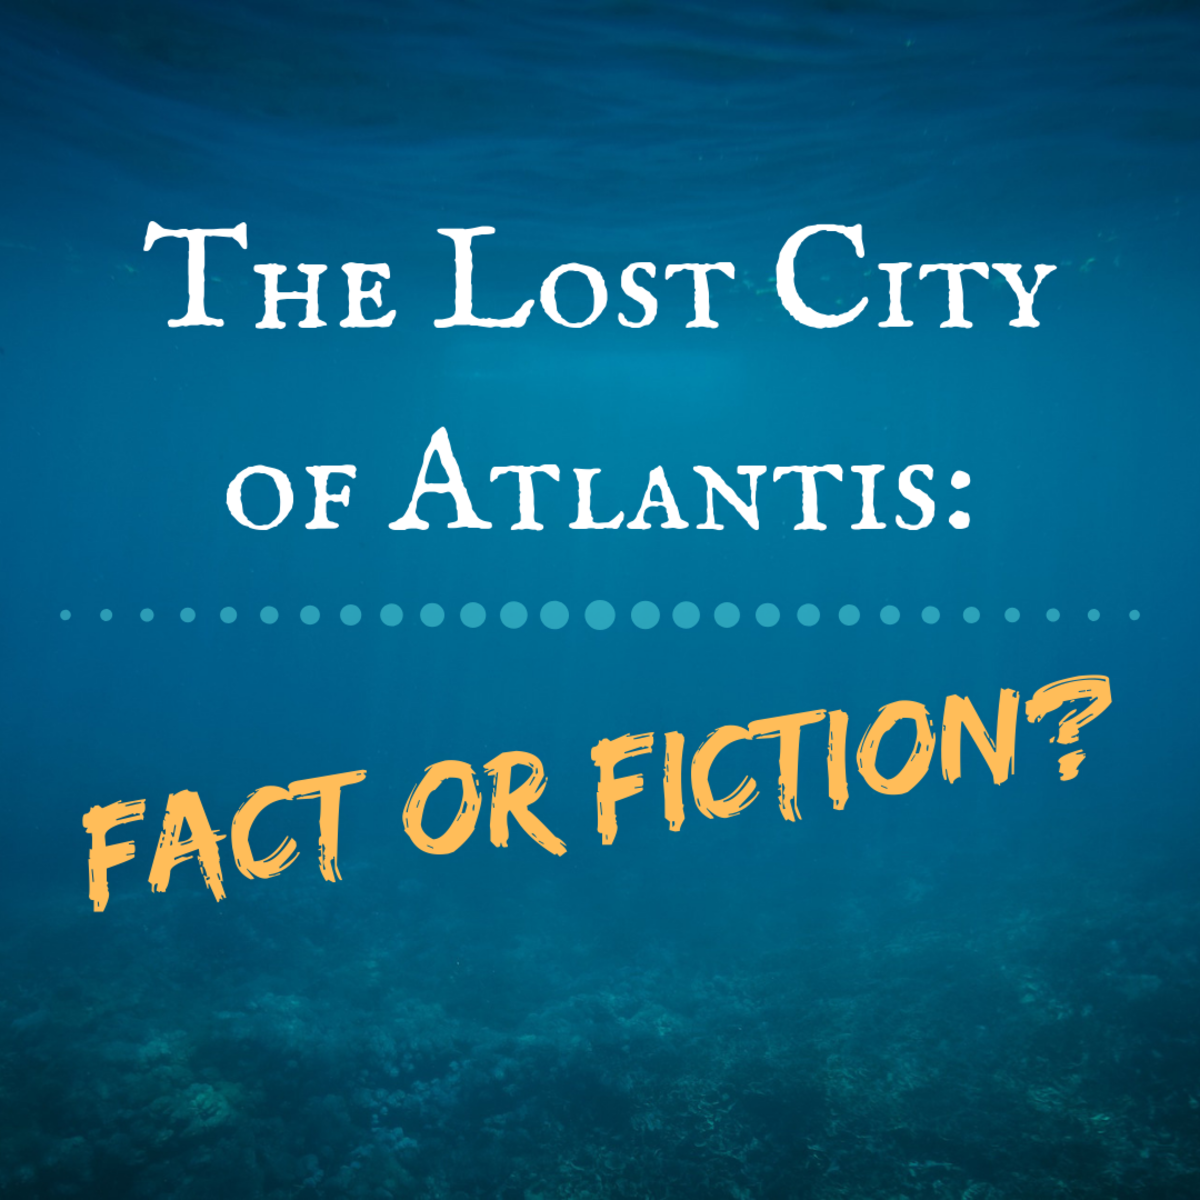 The Lost City of Atlantis: Fact or Fiction?